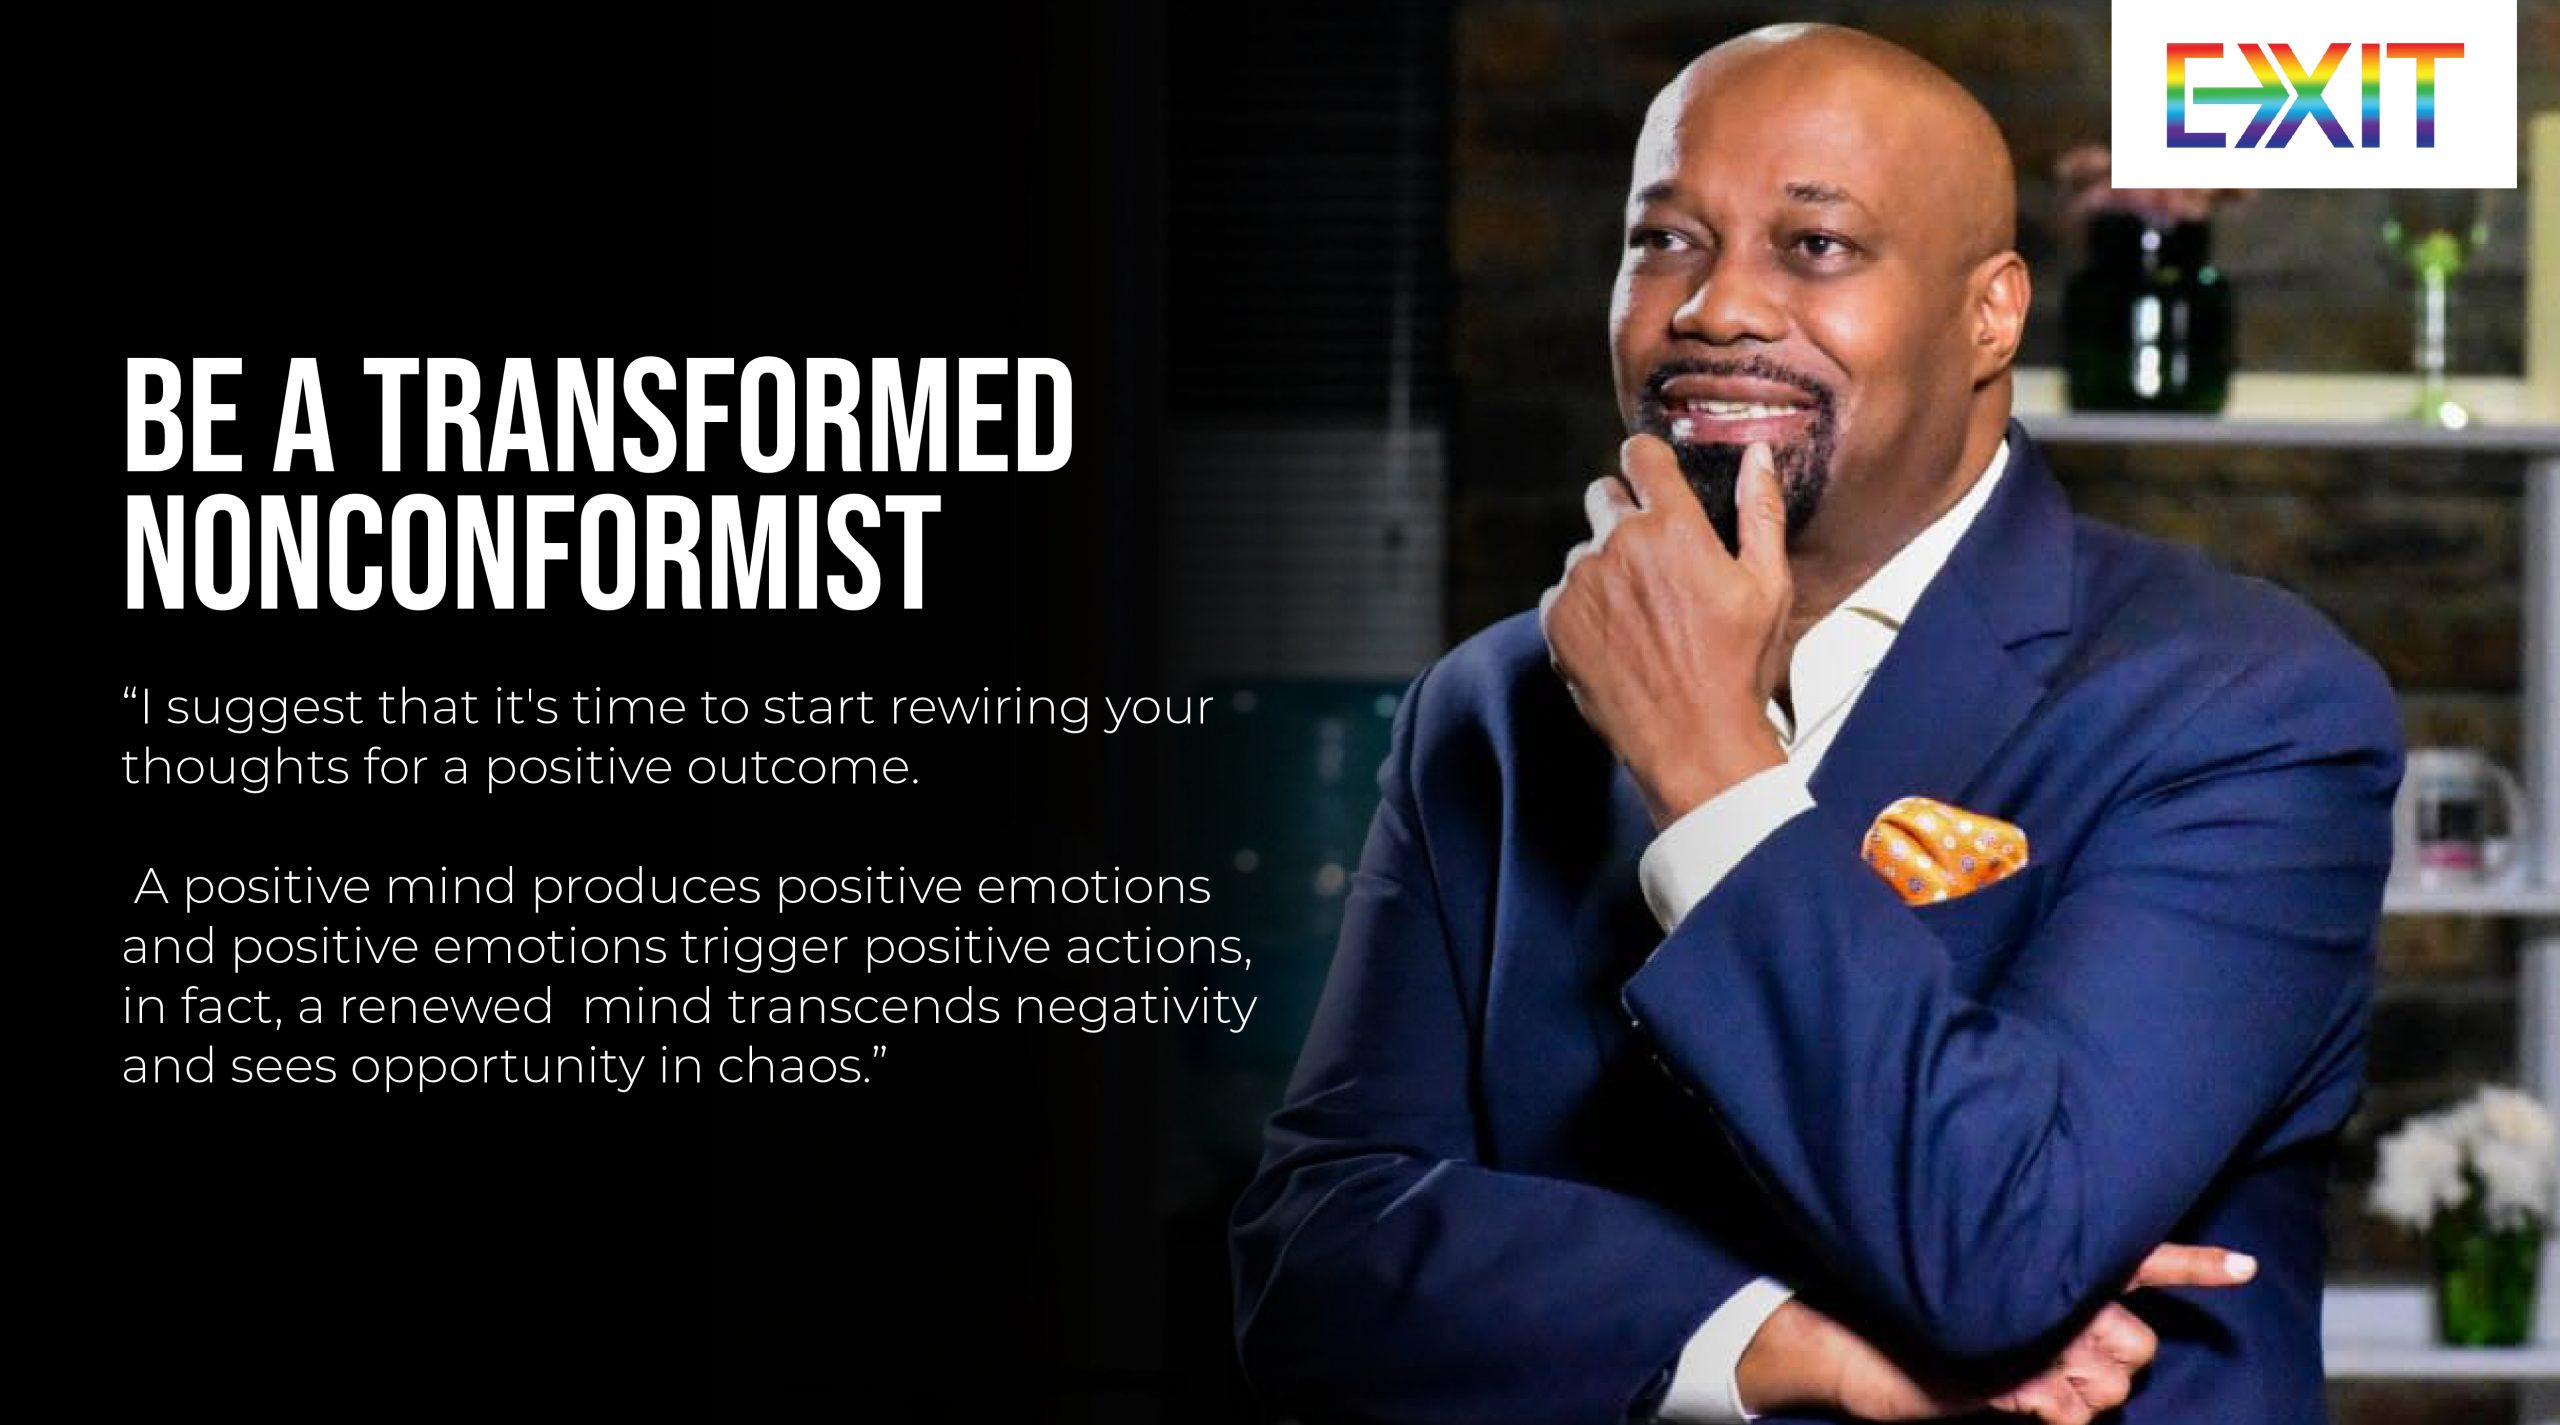 BE A TRANSFORMED NON-CONFORMIST